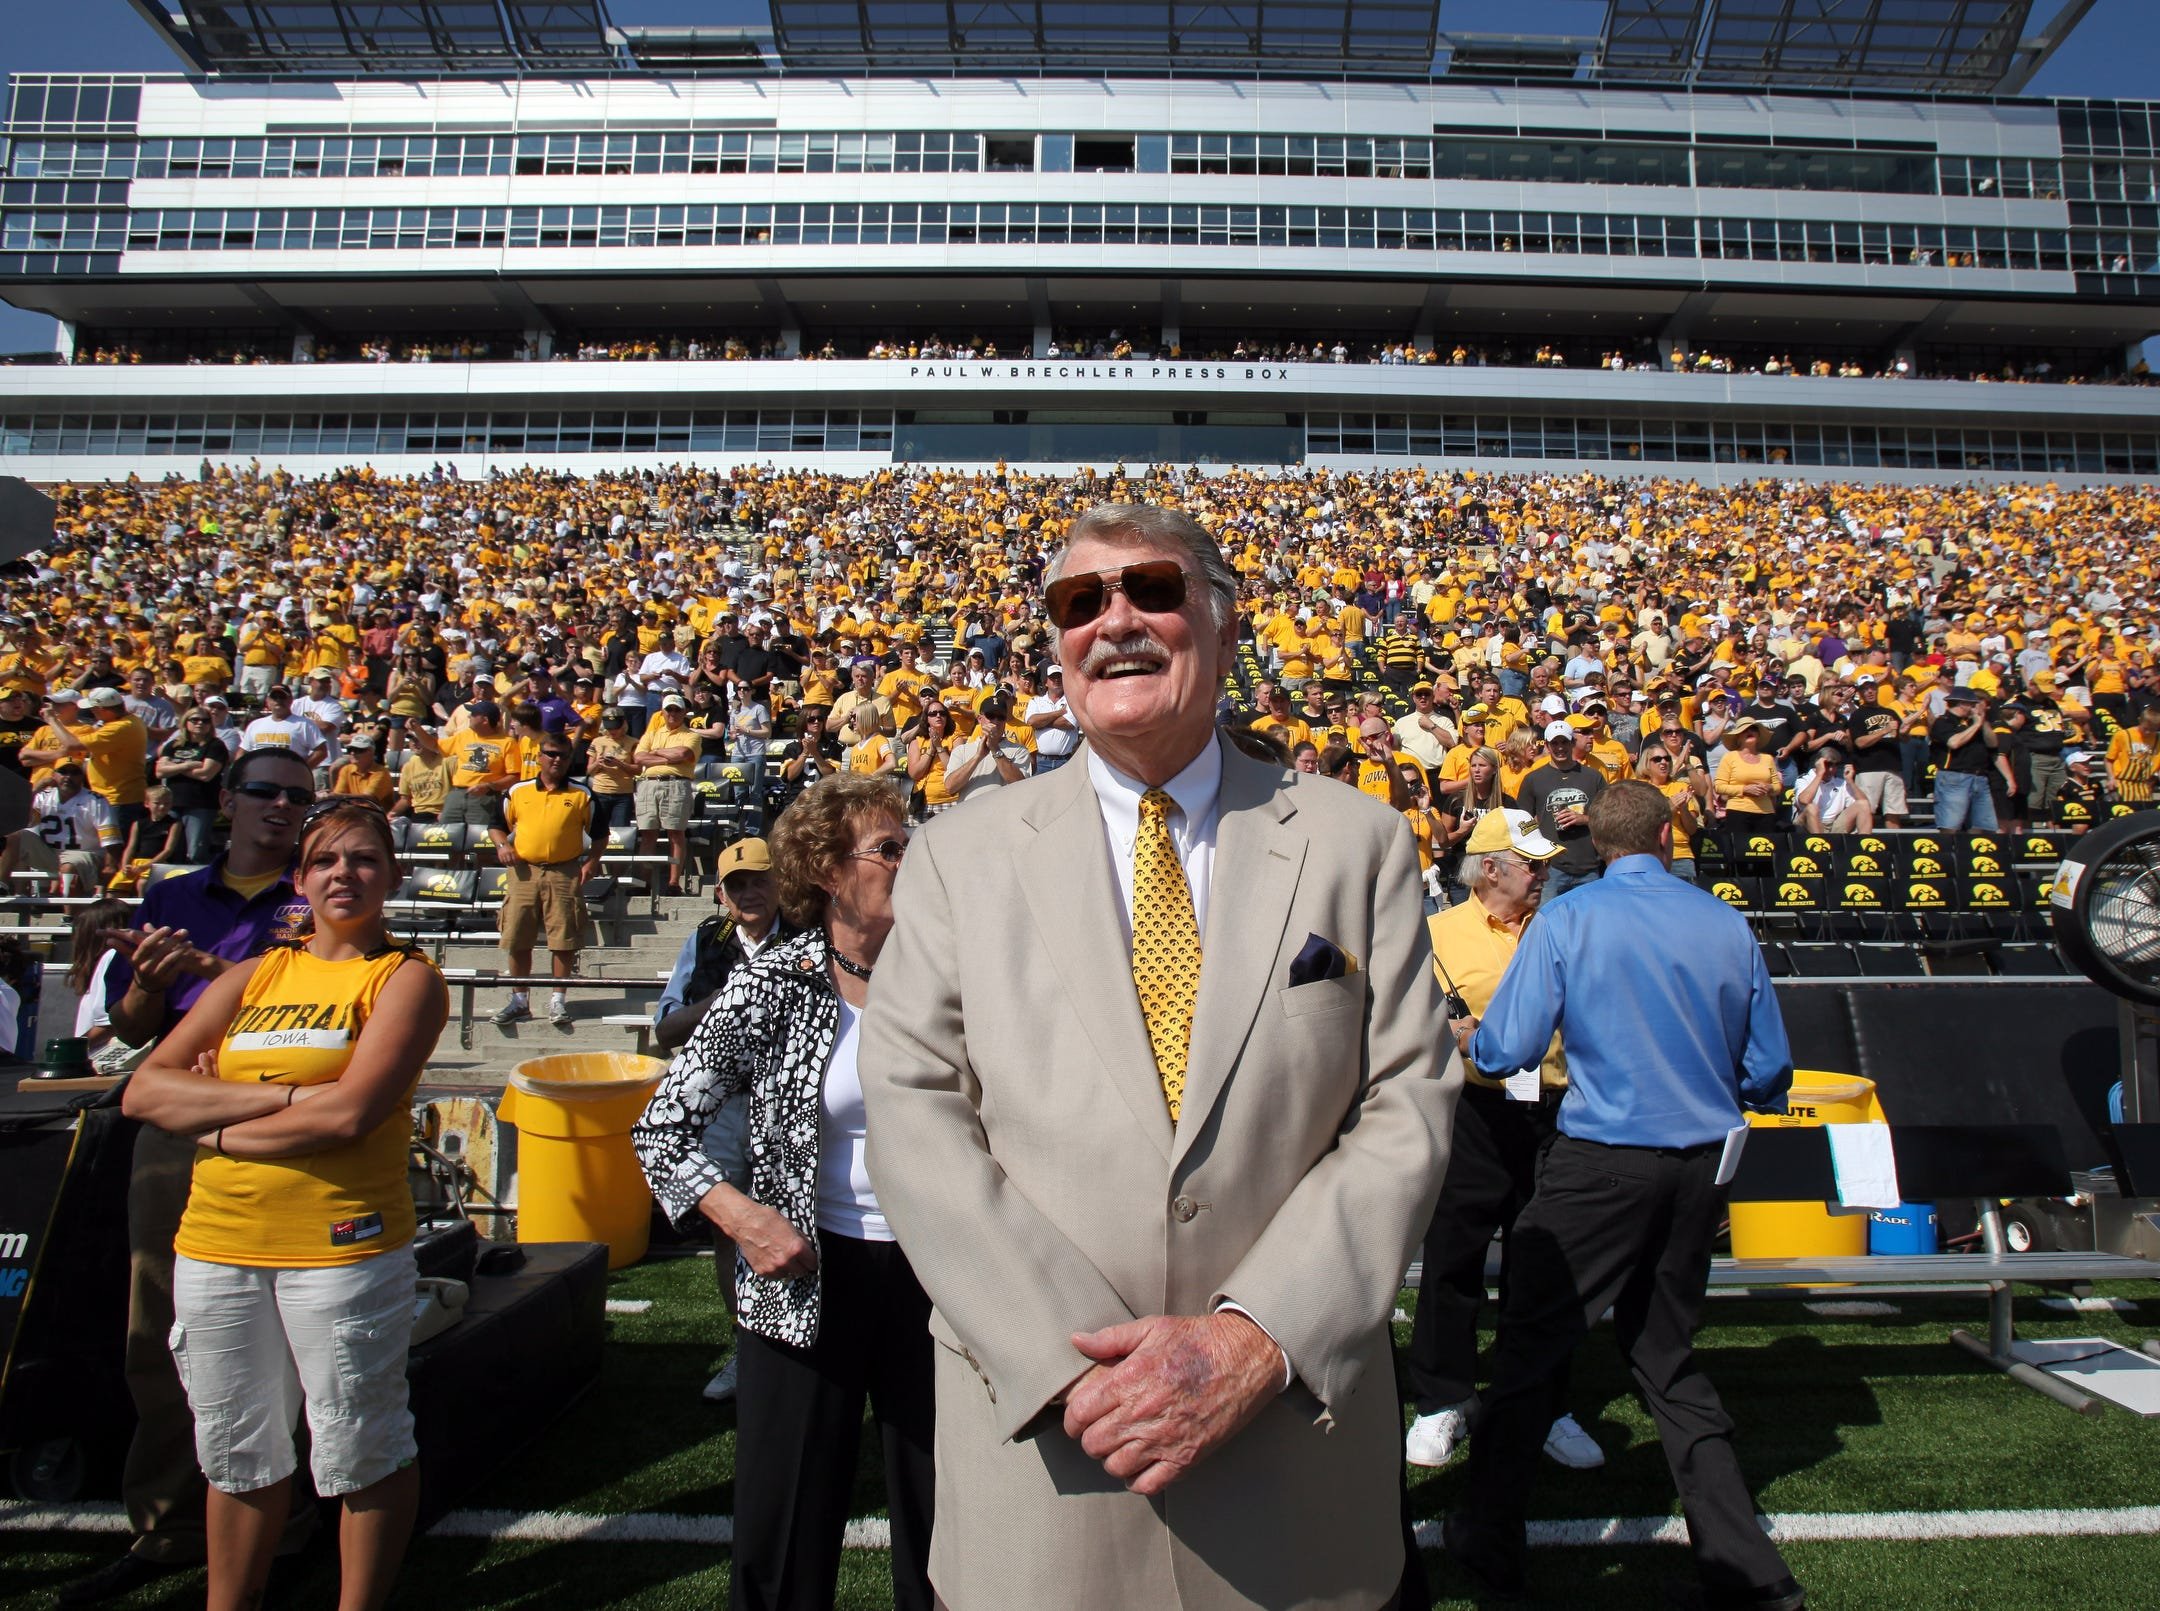 Former Iowa football coach Hayden Fry stands on the sidelines prior to kickoff on Sept. 5, 2009 in Iowa City.